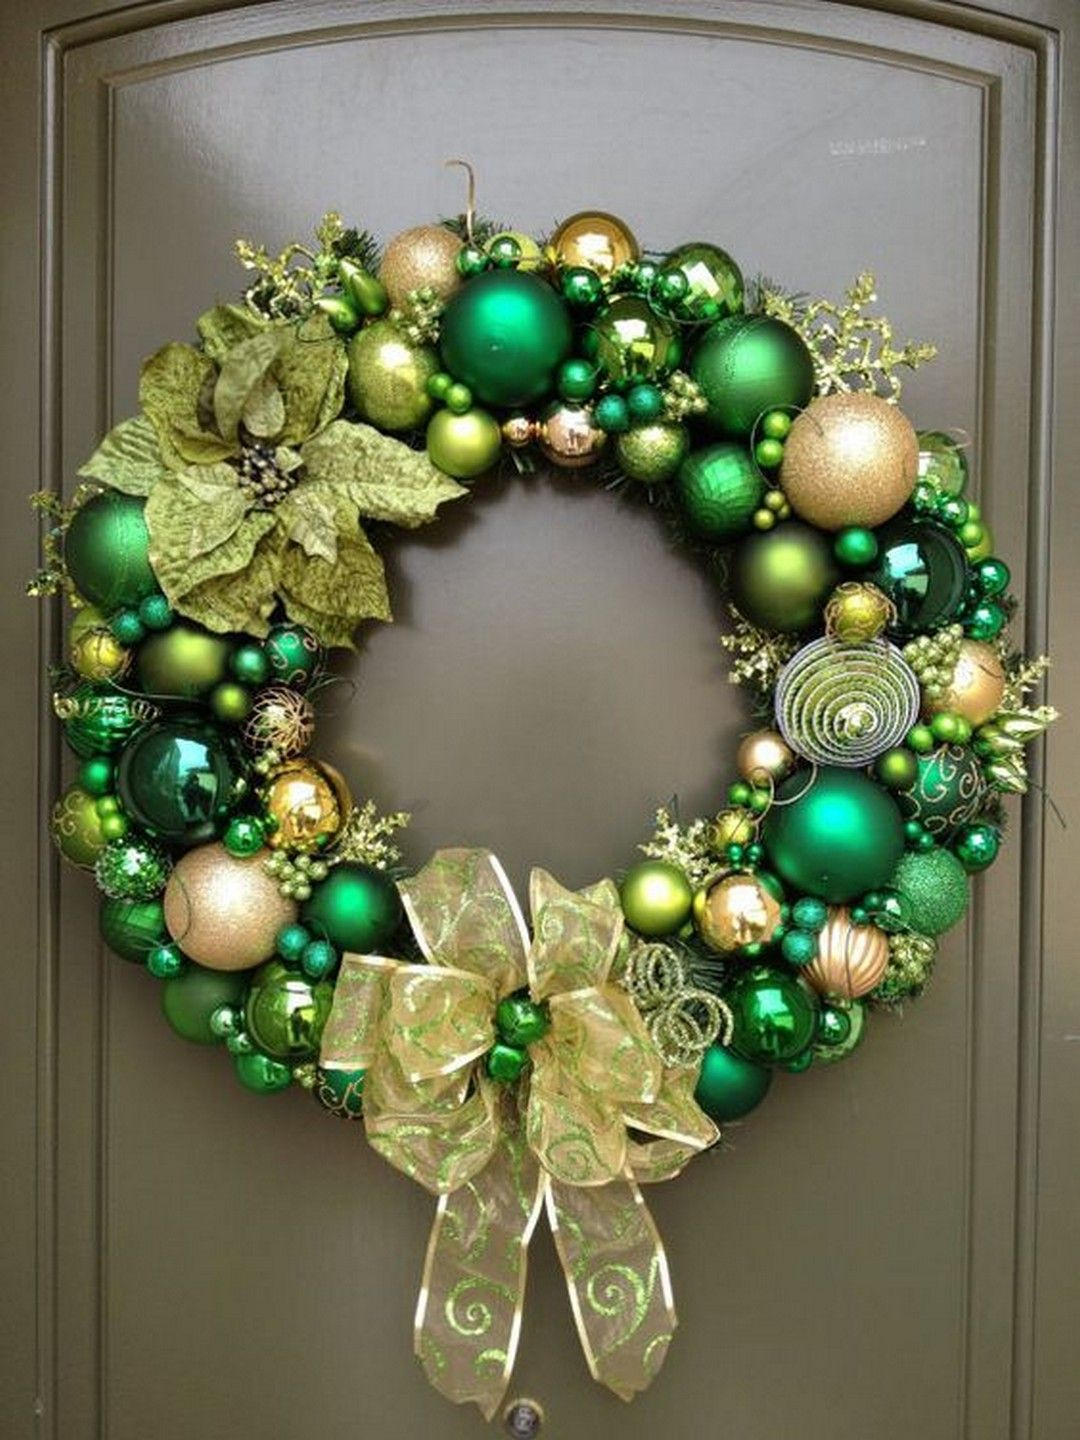 Christmas wreath 2018 wire hanger with ornaments